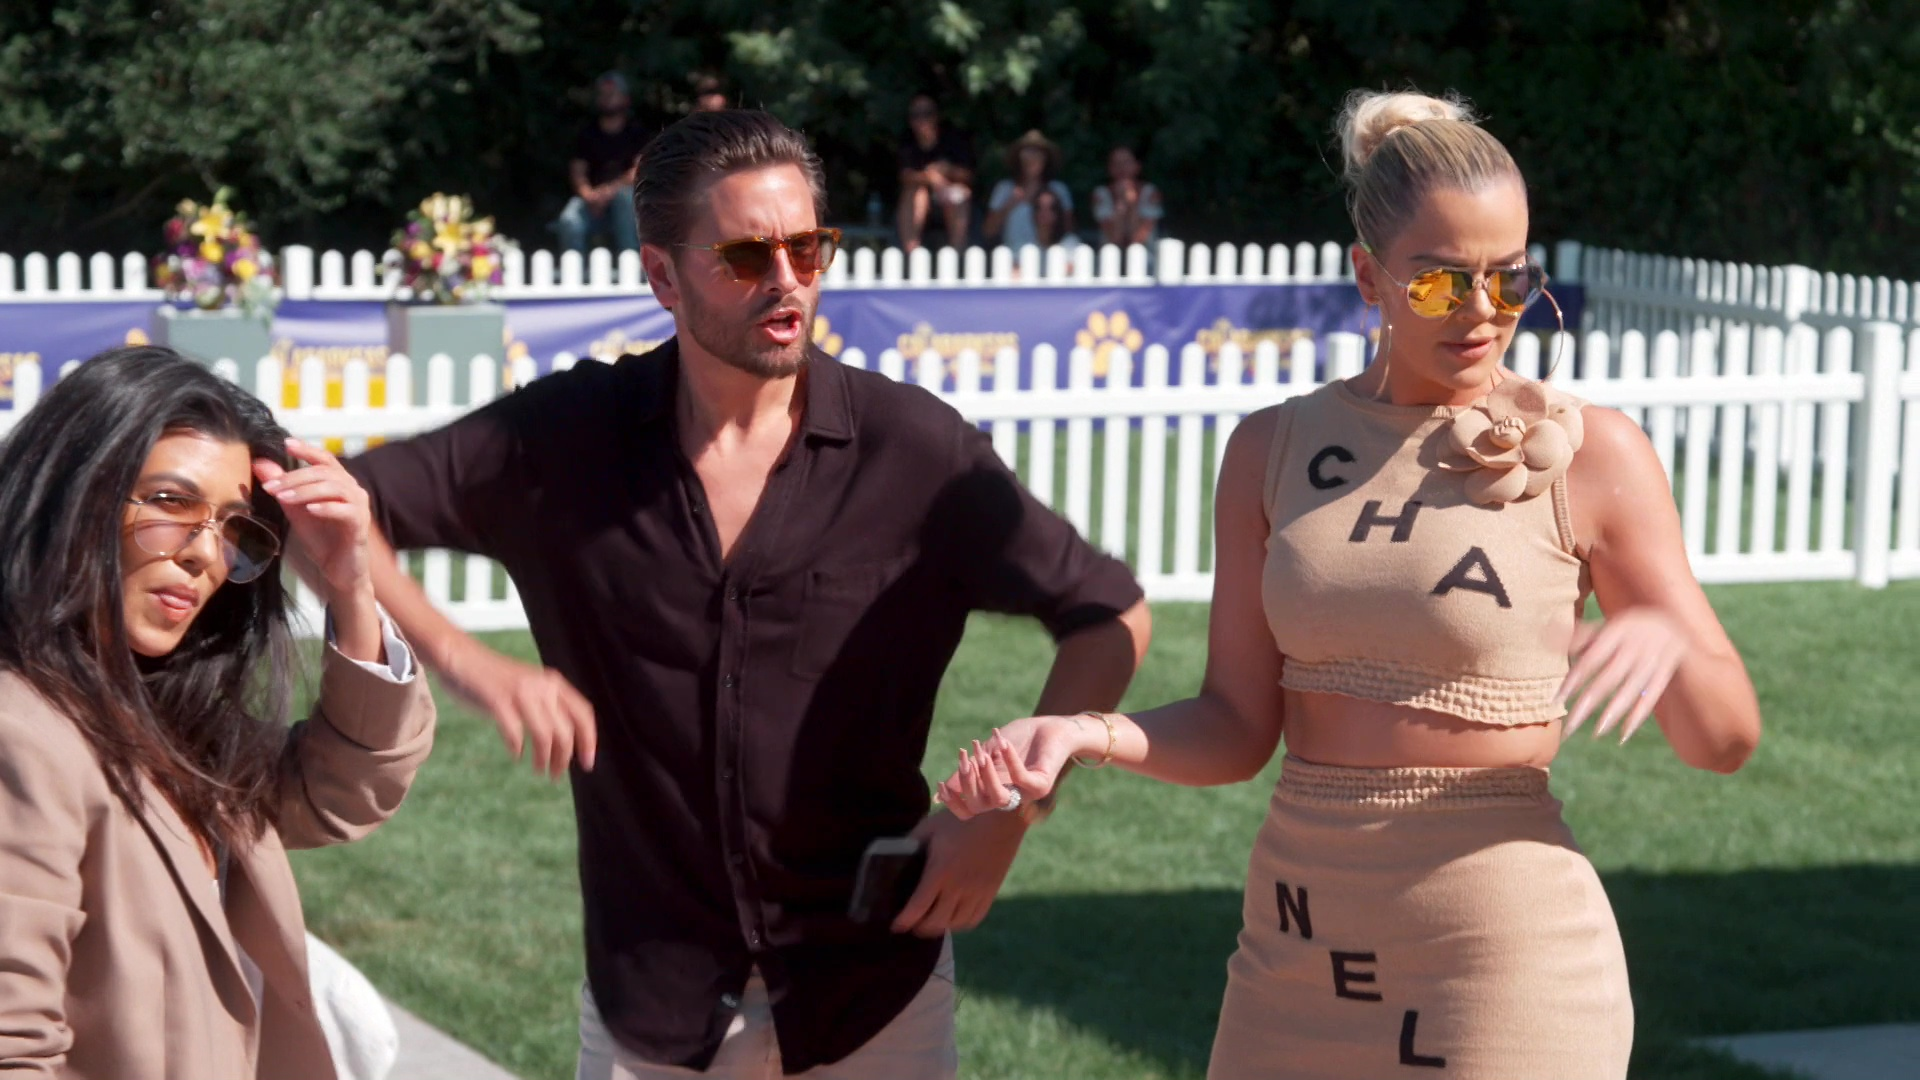 Khloe Kardashian Fansite vlcsnap-2019-10-29-19h41m34s959 Keeping Up With The Kardashians – Episode 17.07 The Ex-Factor – Video streaming, Caps & Ratings